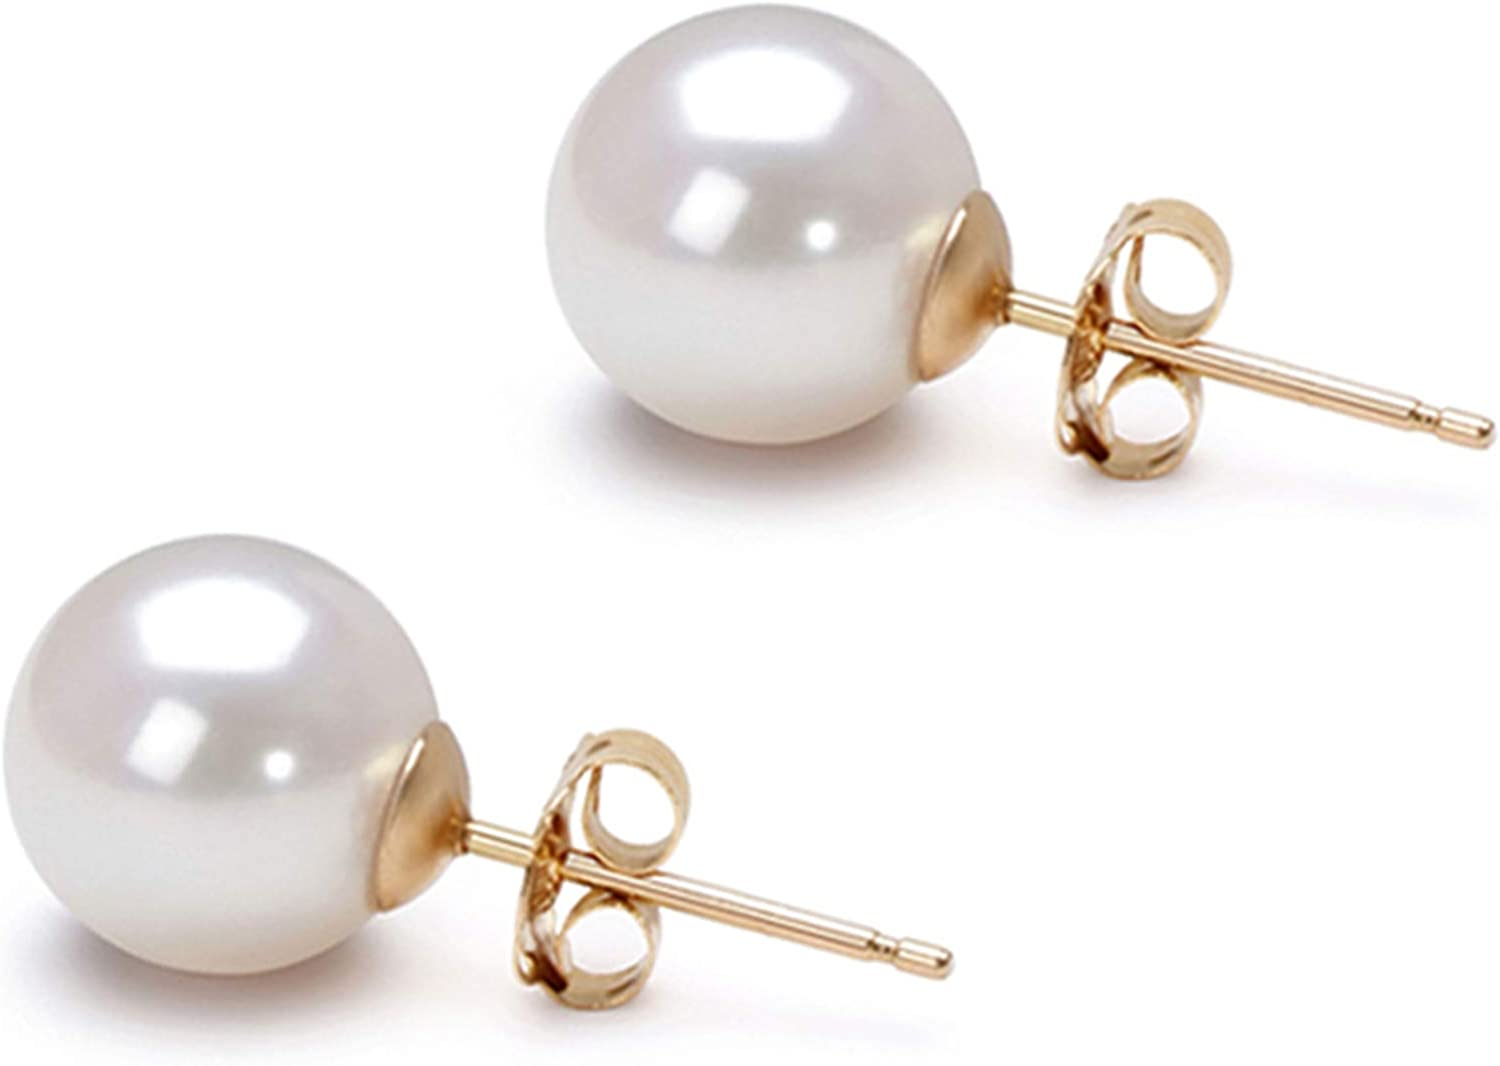 In stock Akoya Cultured Pearl Earrings Stud Pea 5-10mm White Direct sale of manufacturer AAA